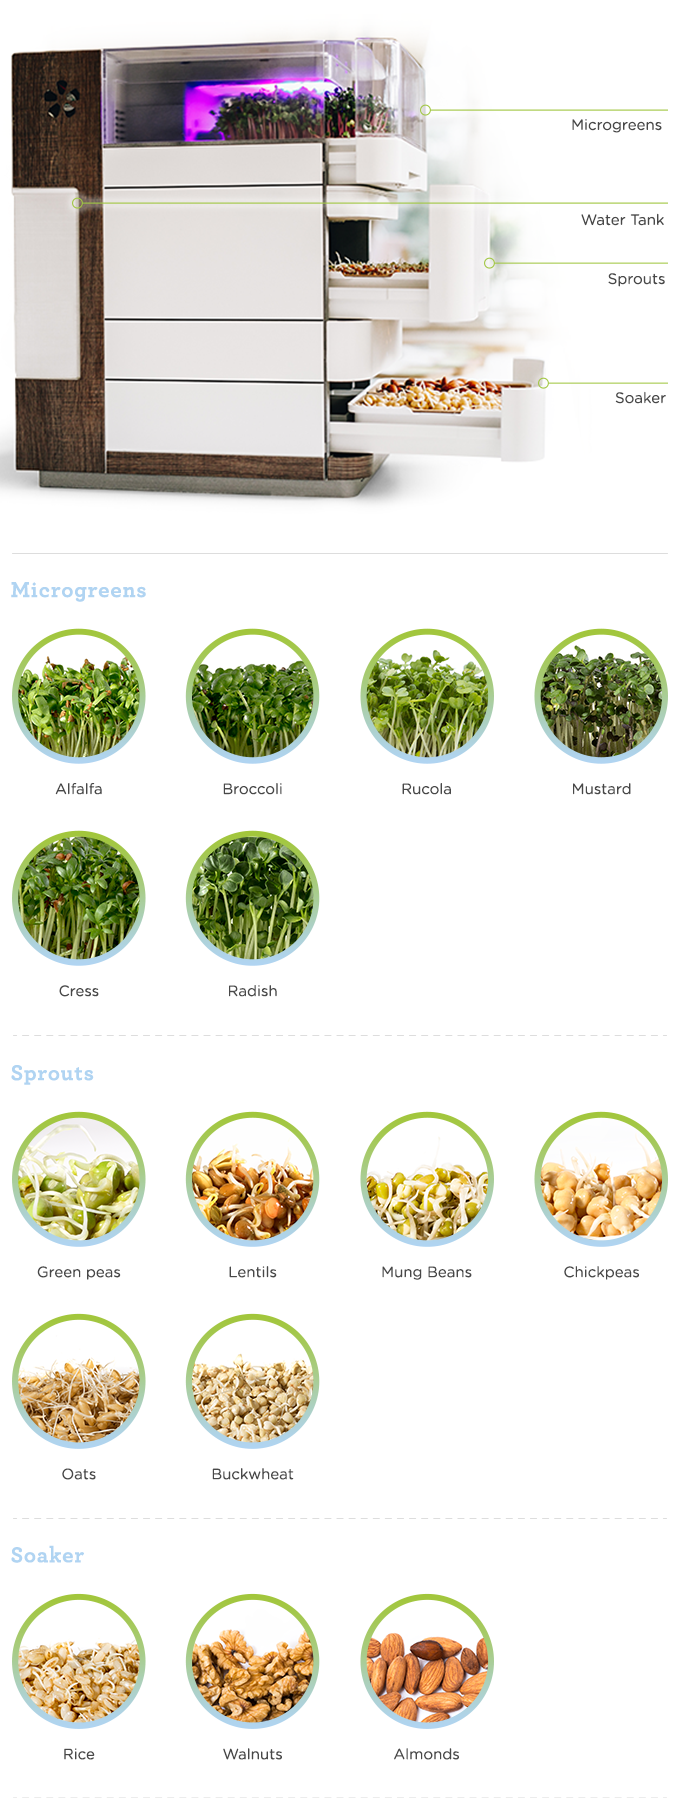 Produce 15 different types of natural and sustainable superfoods